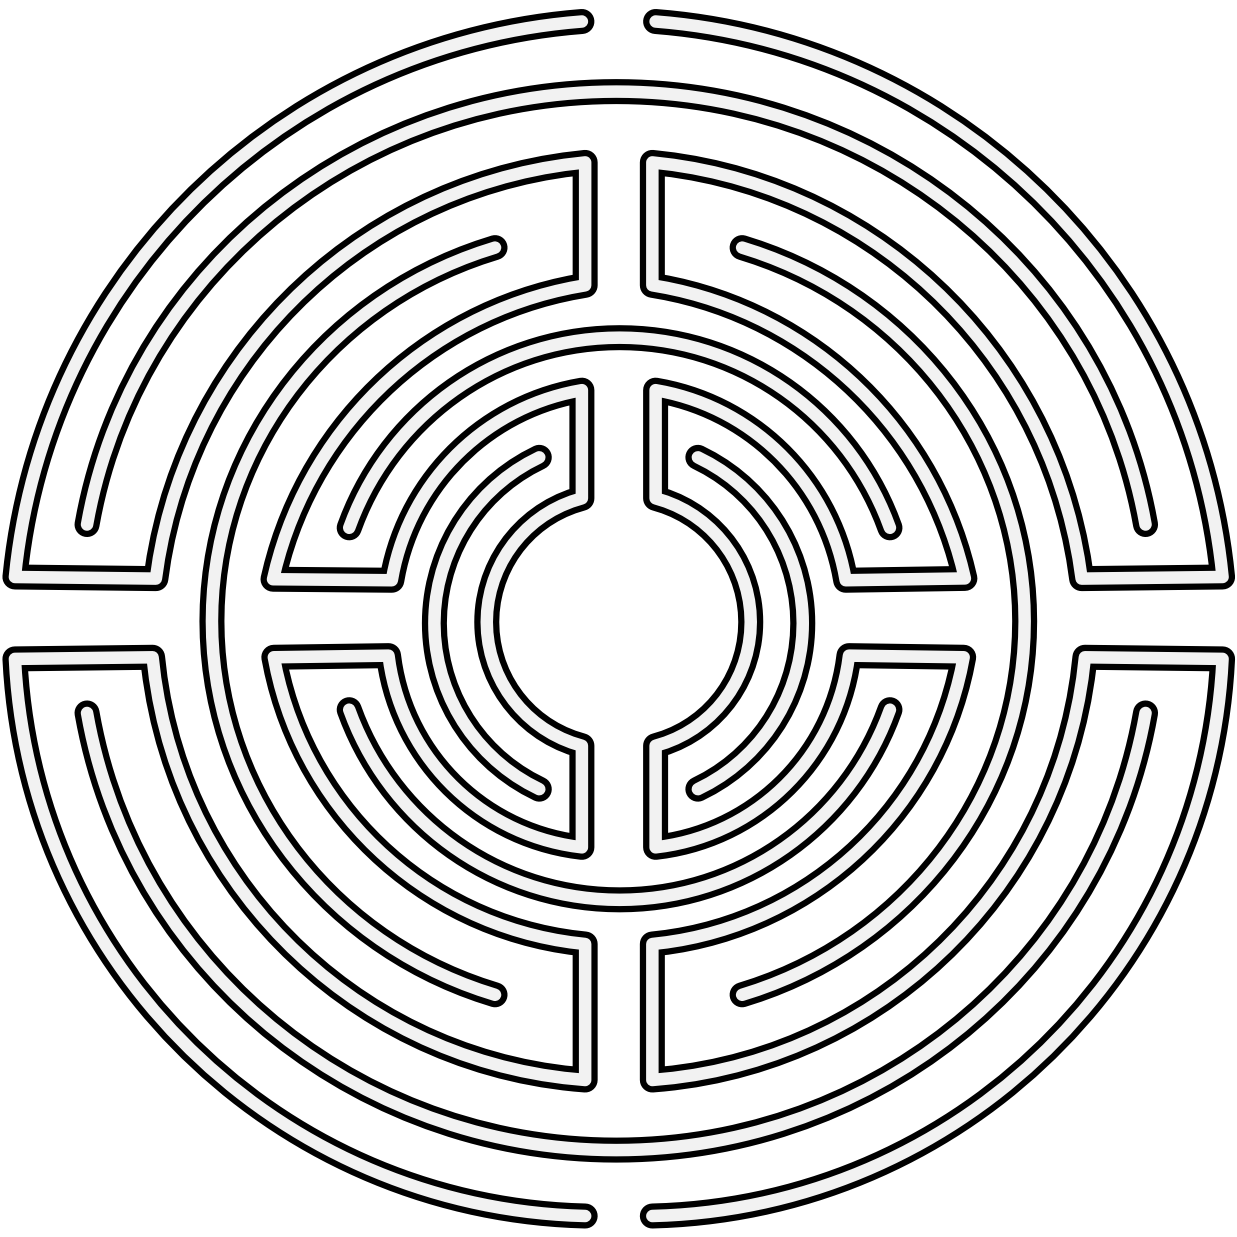 Pdf maze. Labyrinth traceable heraldic art